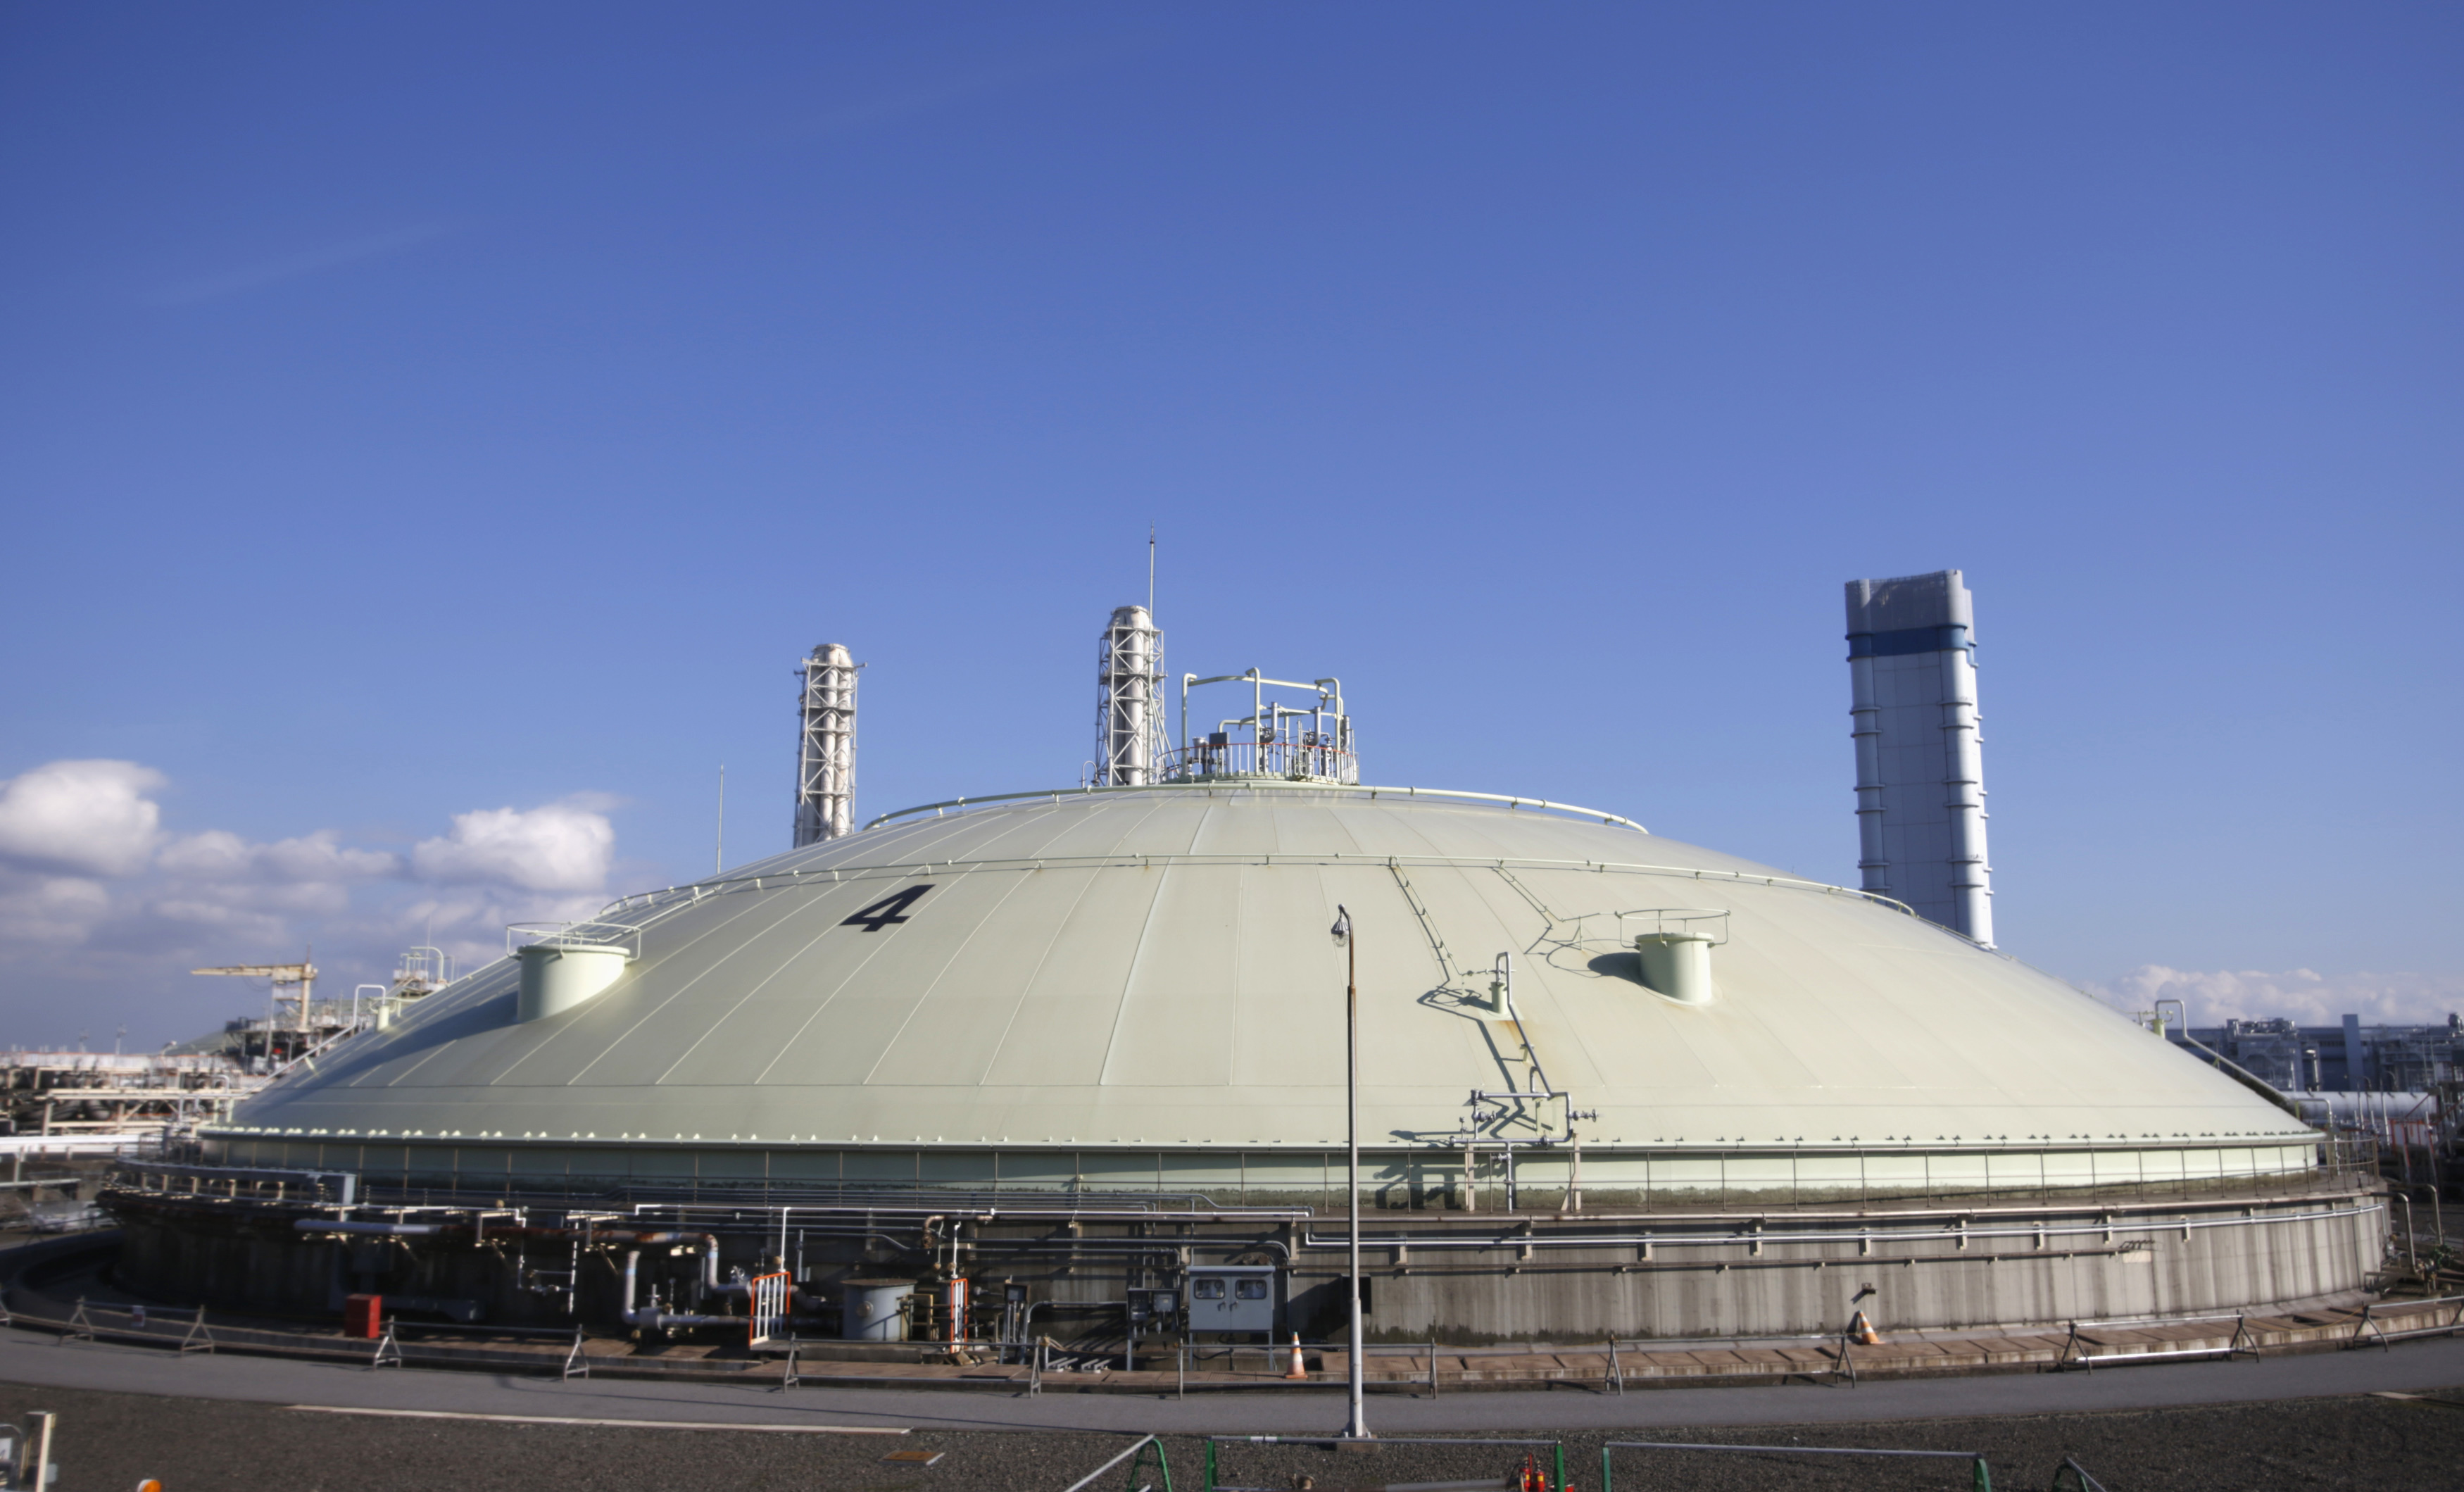 A LIQUEFIED NATURAL GAS STORAGE TANK IS SEEN AT TOKYO ELECTRIC